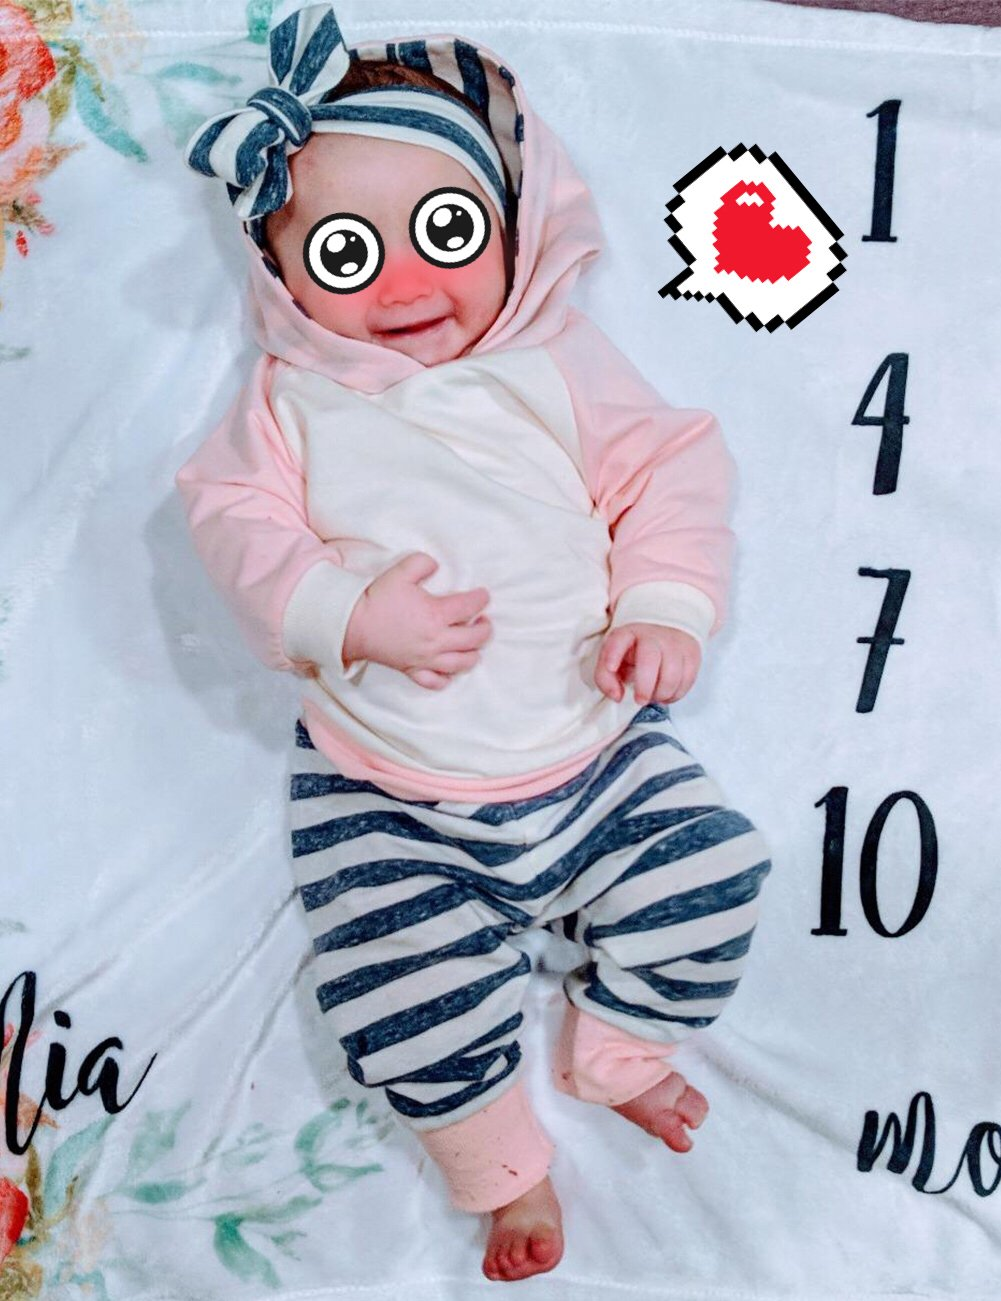 Baby Girls' Clothes Long Sleeve Hoodie Tops, Striped Pants+Headband Outfits Set (18-24 Months) by TUEMOS (Image #7)